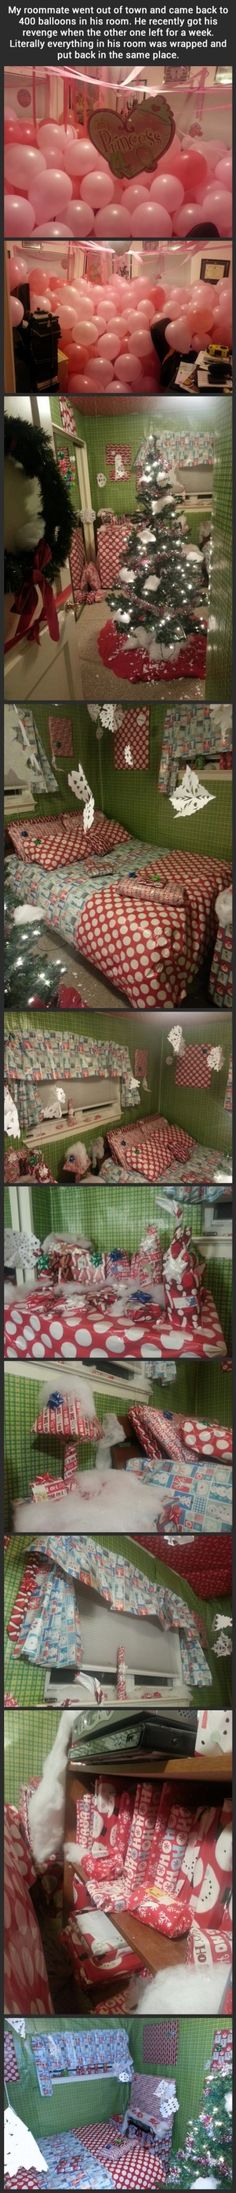 roommate revenge - The only problem I have with this is that NO man can wrap things that well. He had help.